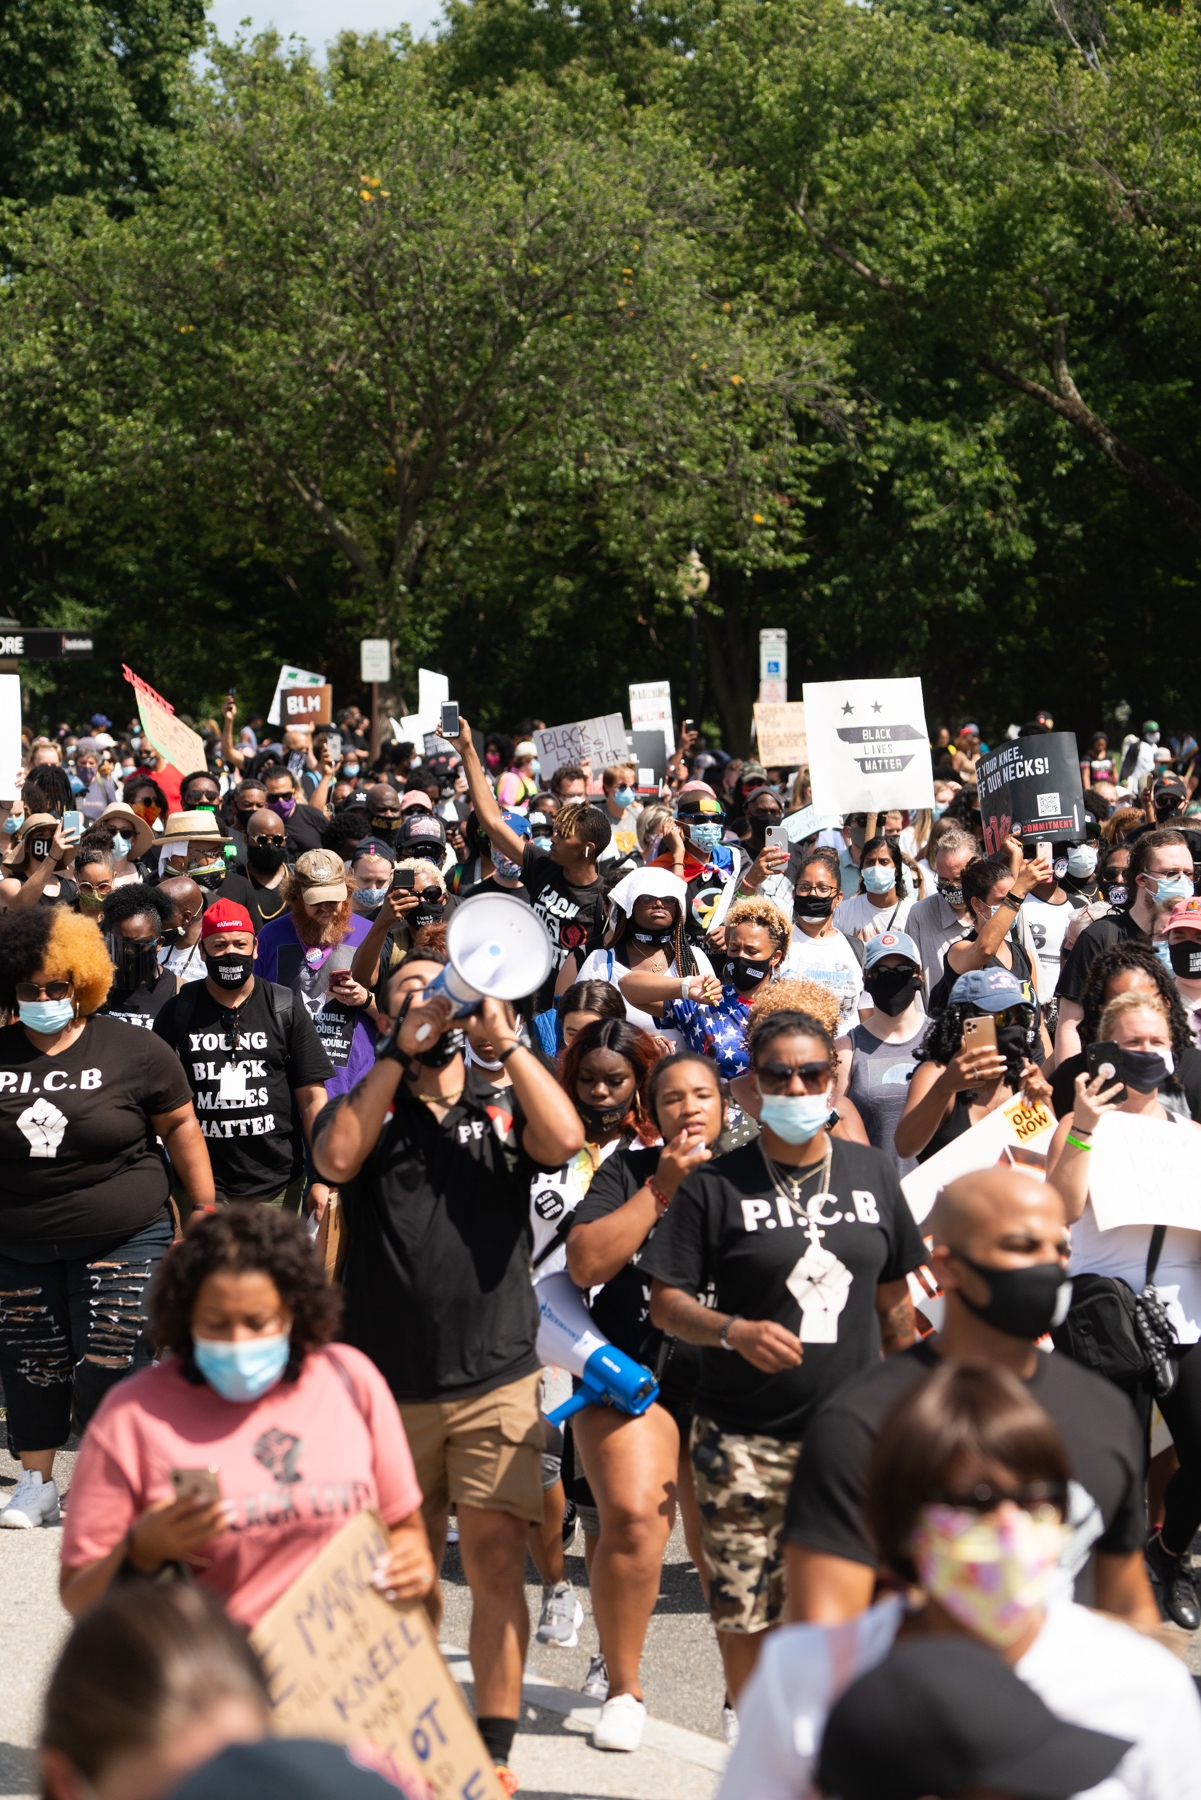 commitment march on washington, al sharpton walk, national action network, march, social justice, al sharpton,national mall,march, protest, rally, black lives matter, blm,